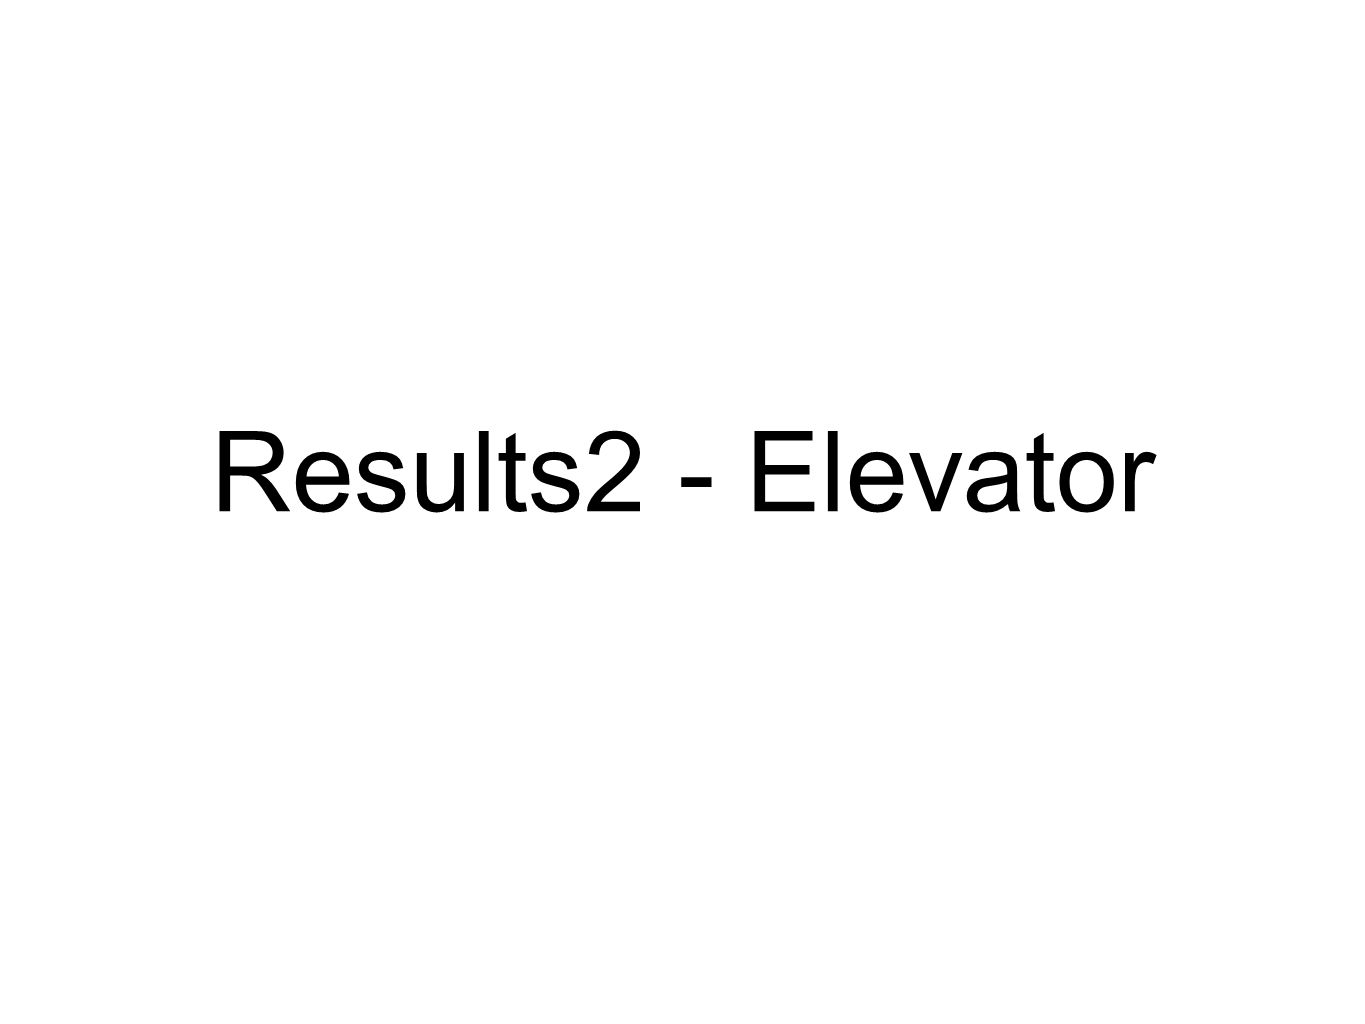 Results2 - Elevator